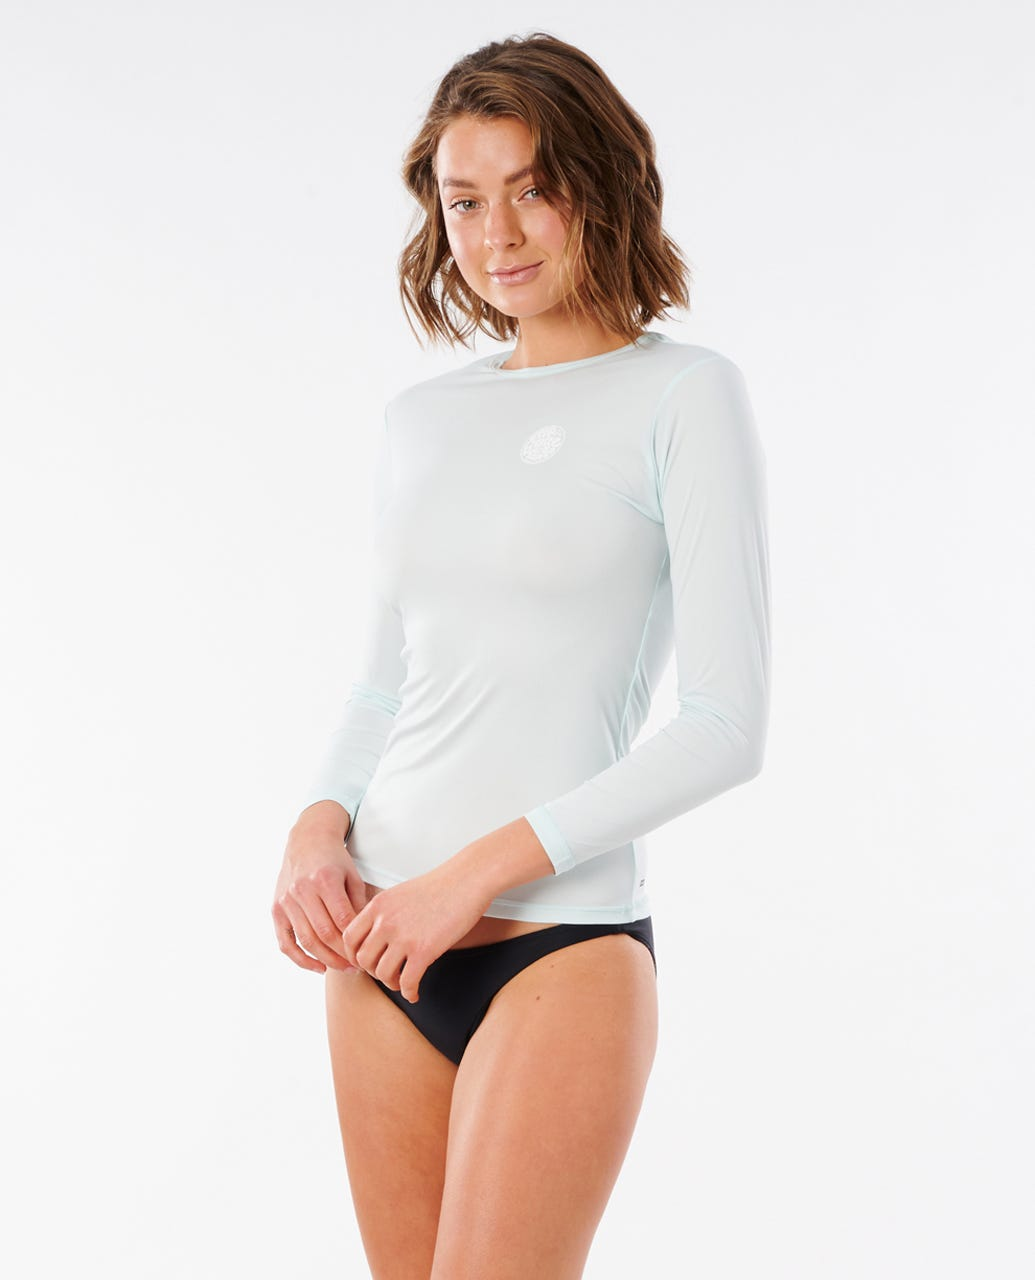 Rip Curl Whitewash Loose FIT Short Sleeve Rash Guard